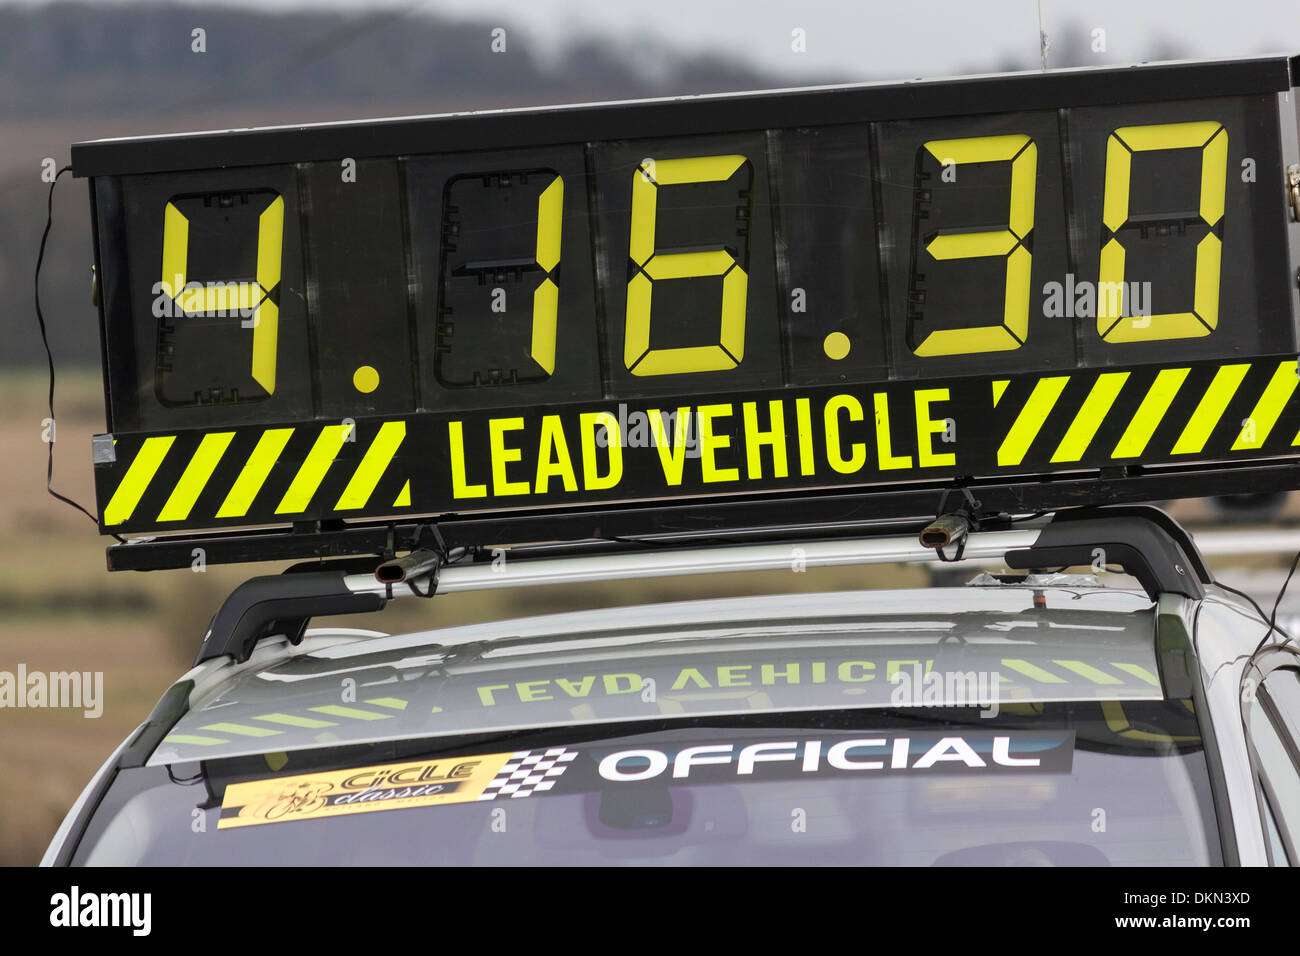 Large elapsed digital display race timer on lead vehicle, Cicle Classic Race 2013 cycle race. - Stock Image